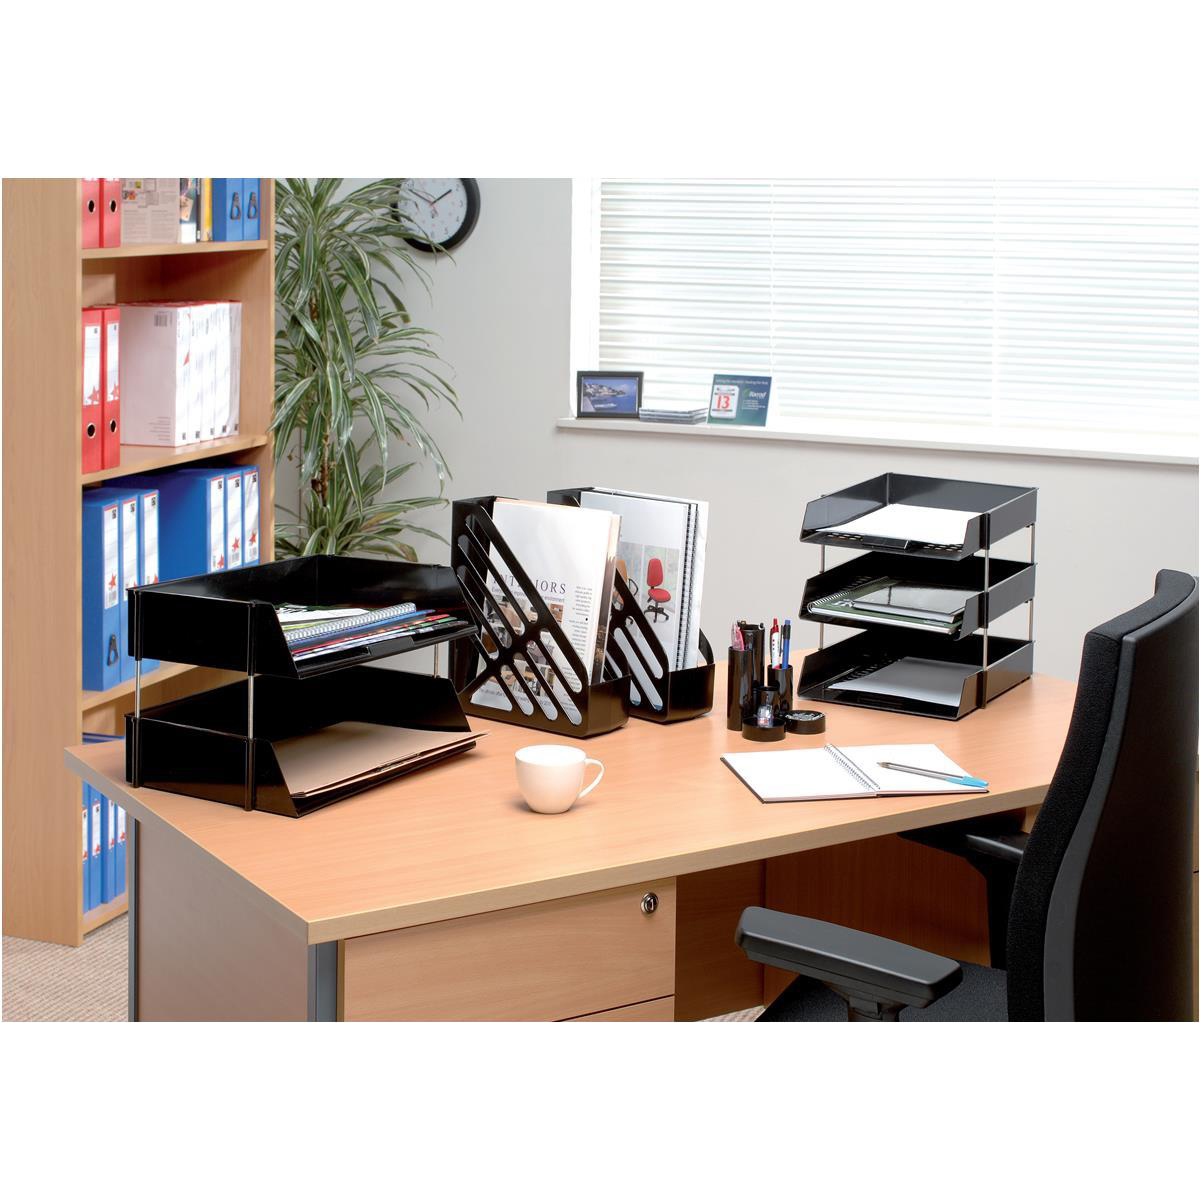 5 Star Office Letter Tray Wide Entry High-impact Polystyrene Stackable Black